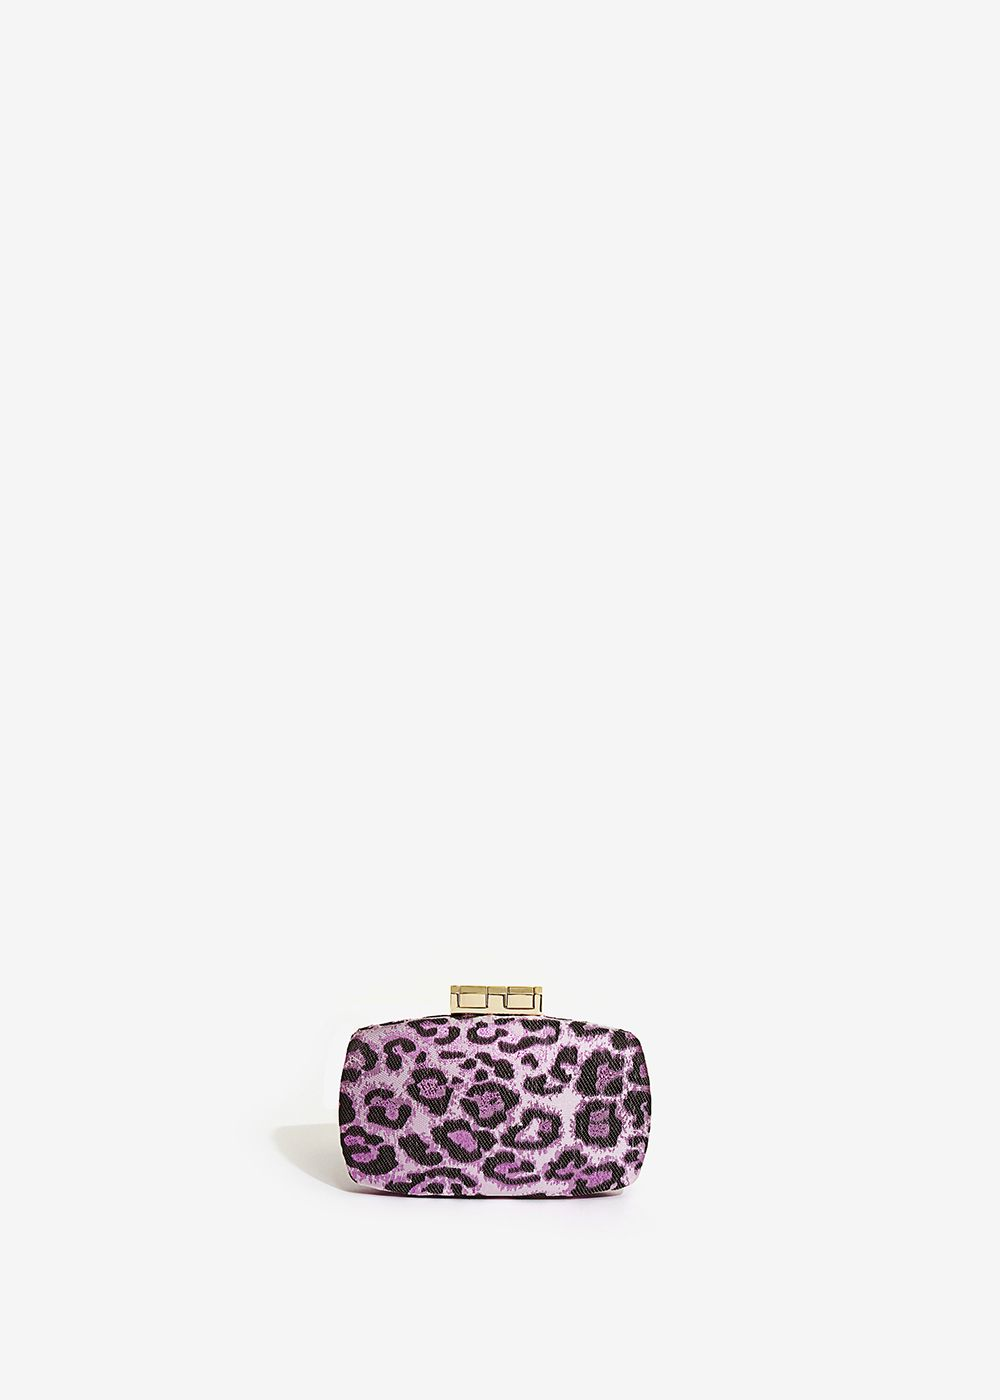 CLUTCH IN BROCCATO LEOPARDATO VIOLA